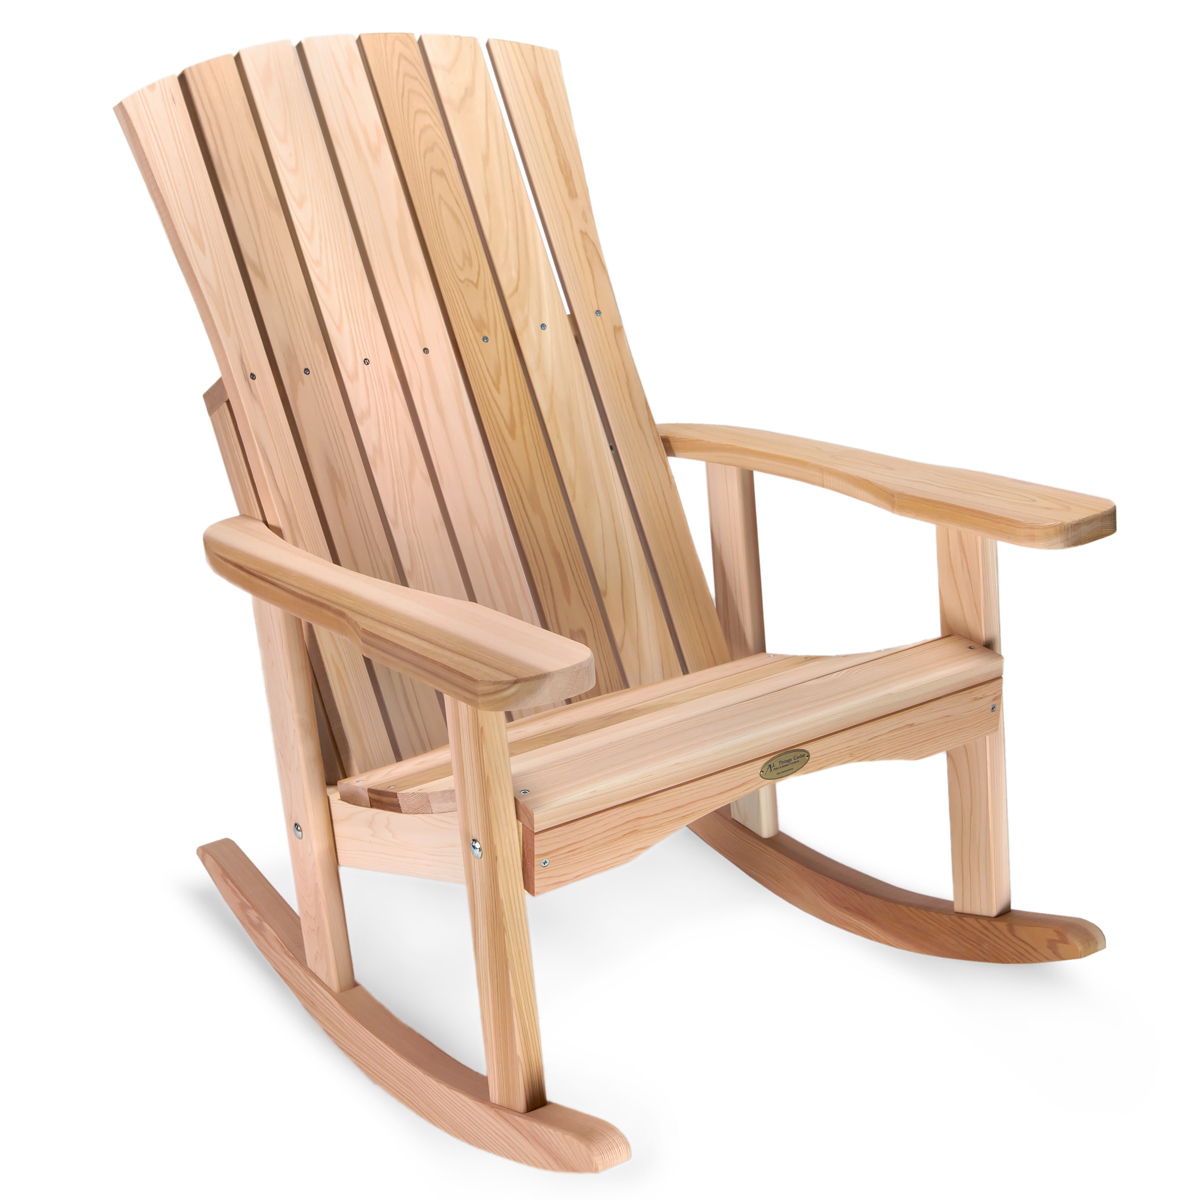 Picture of: All Things Cedar Canada Patio Furniture Adirondack Chairs Porch Muskoka Swings Garden Benches Picnic Tables Planters Arbors And Pergolas